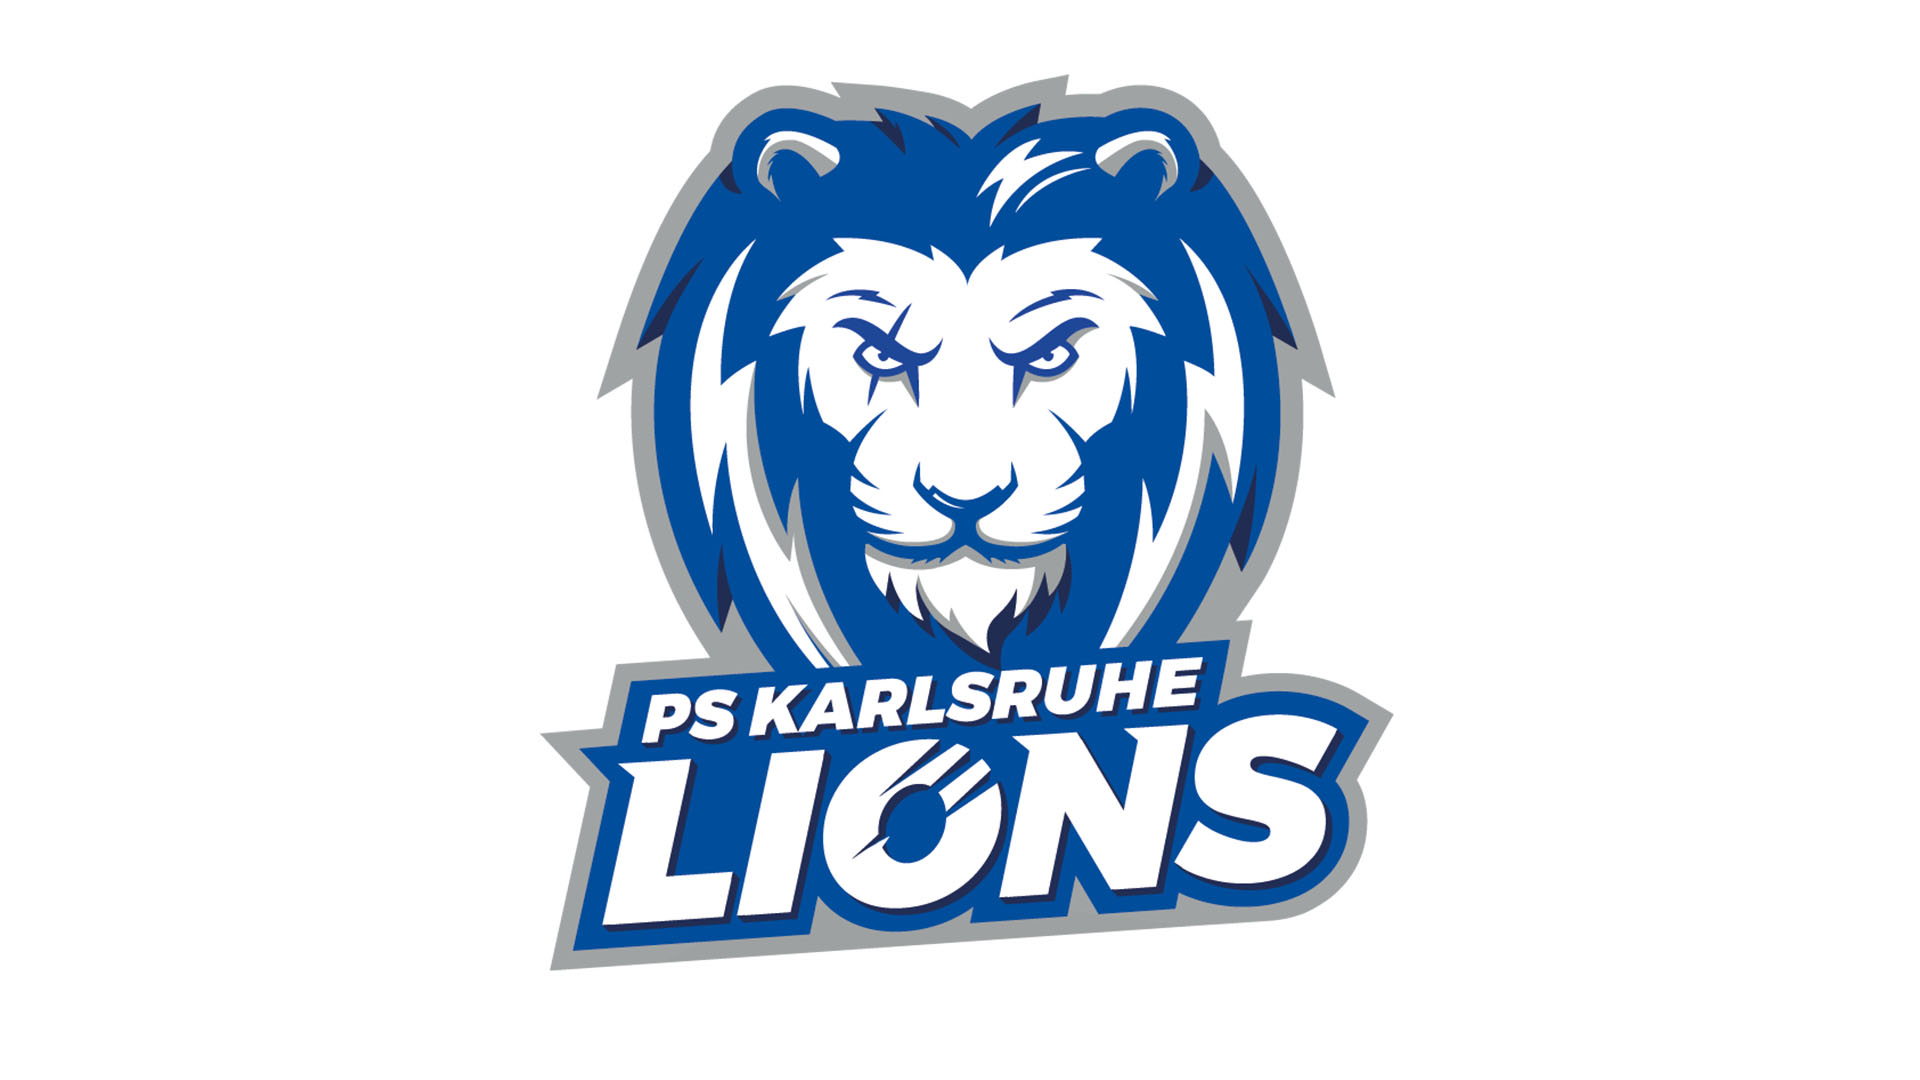 PS-Karlsruhe-Lions-2